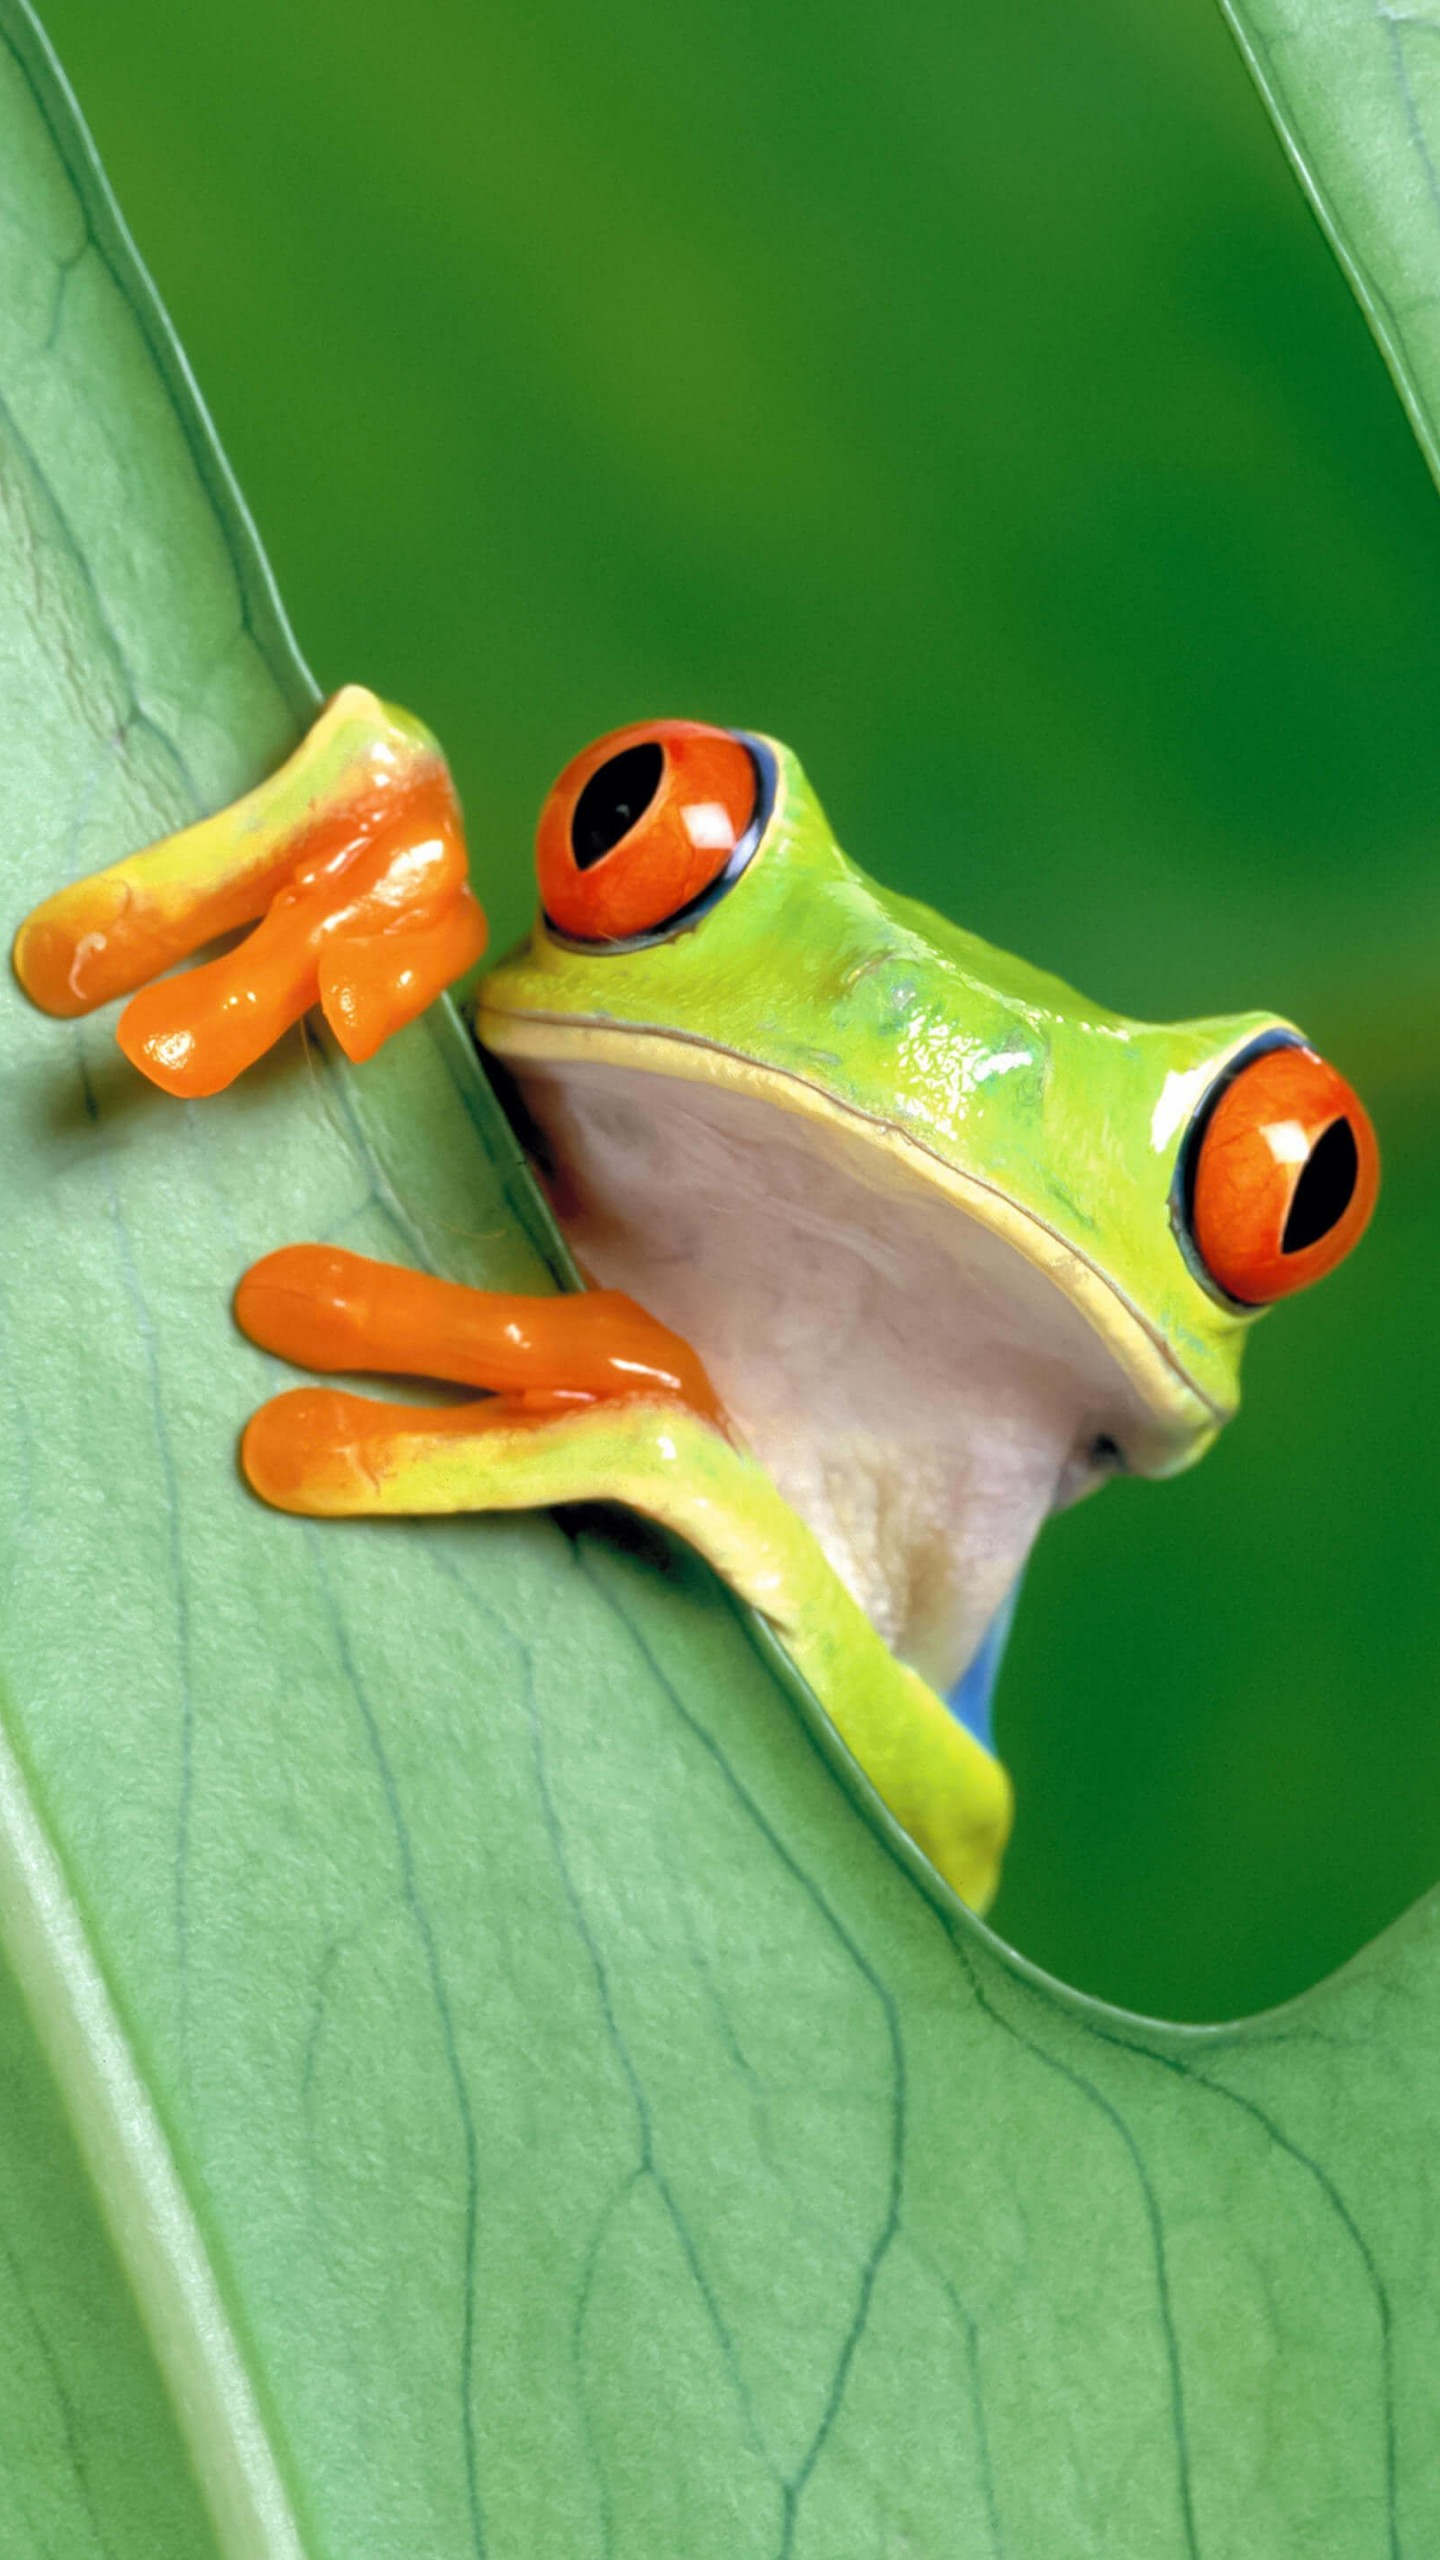 Red Eyed Tree Frog Wallpaper for SAMSUNG Galaxy Note 4